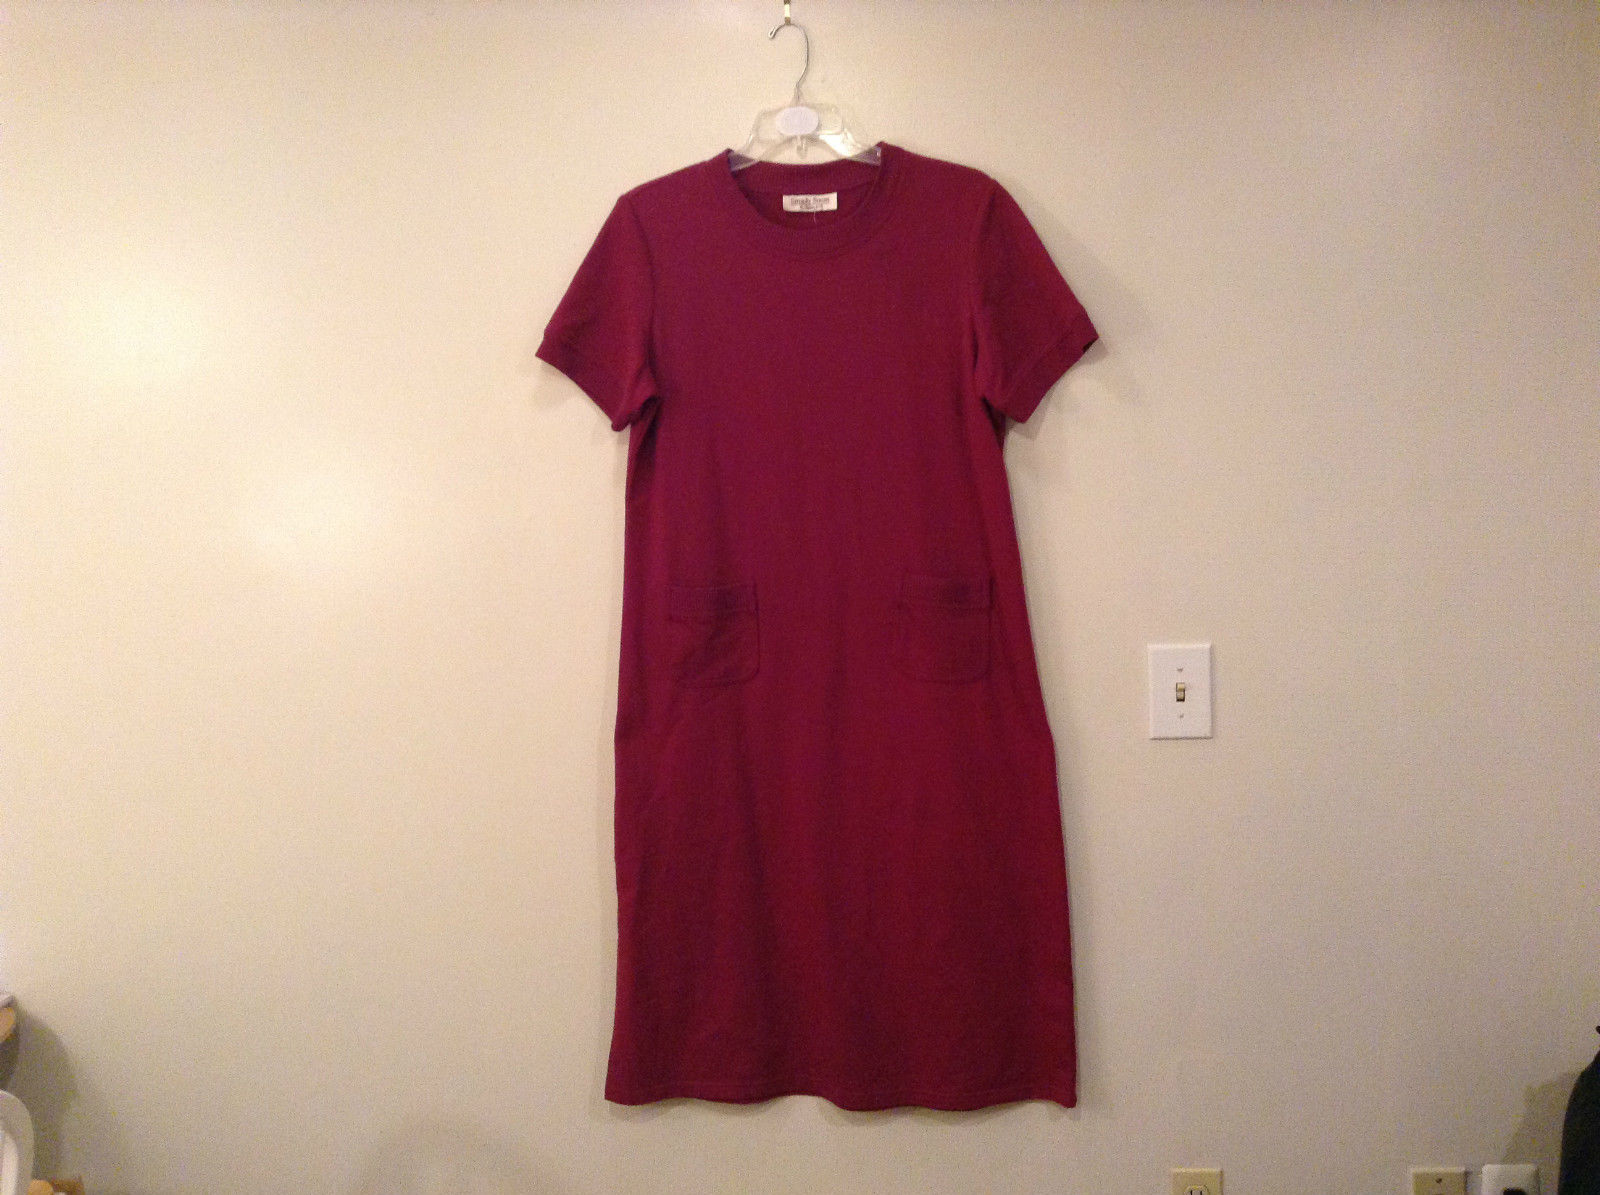 Simply Susan by Susan G Dark Deep Pink Short Sleeves Dress Pockets No Size Tag